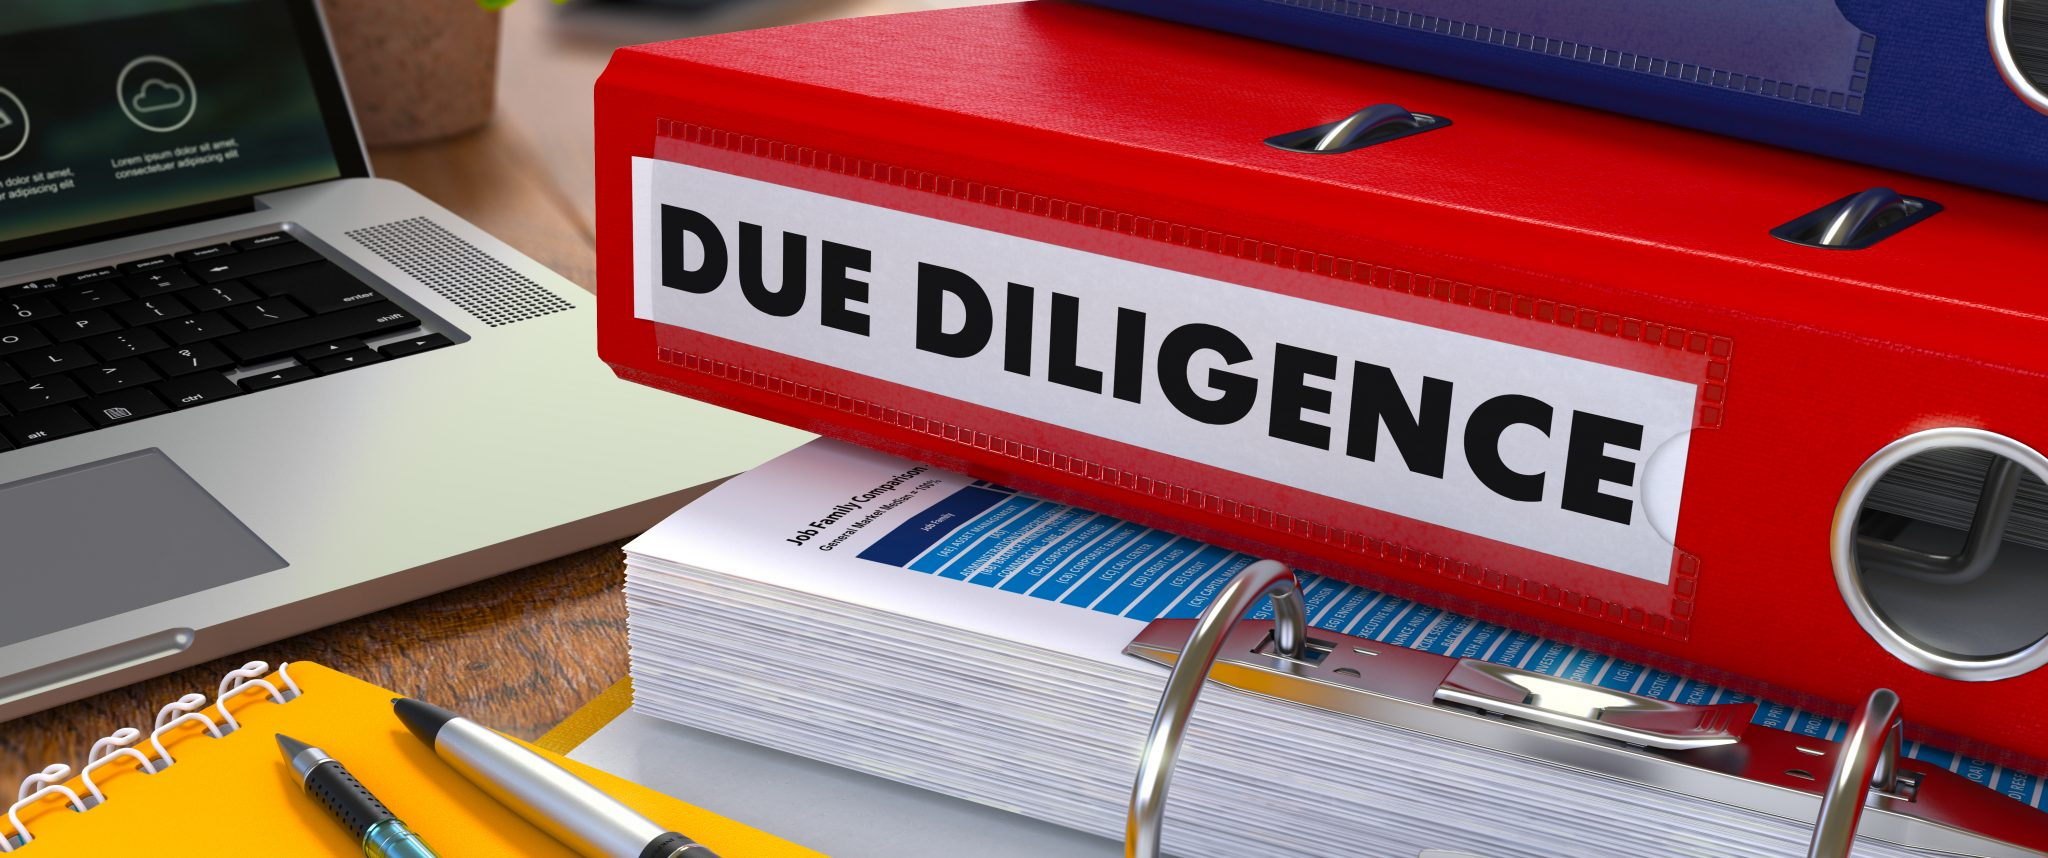 Enhanced due diligence (edd)